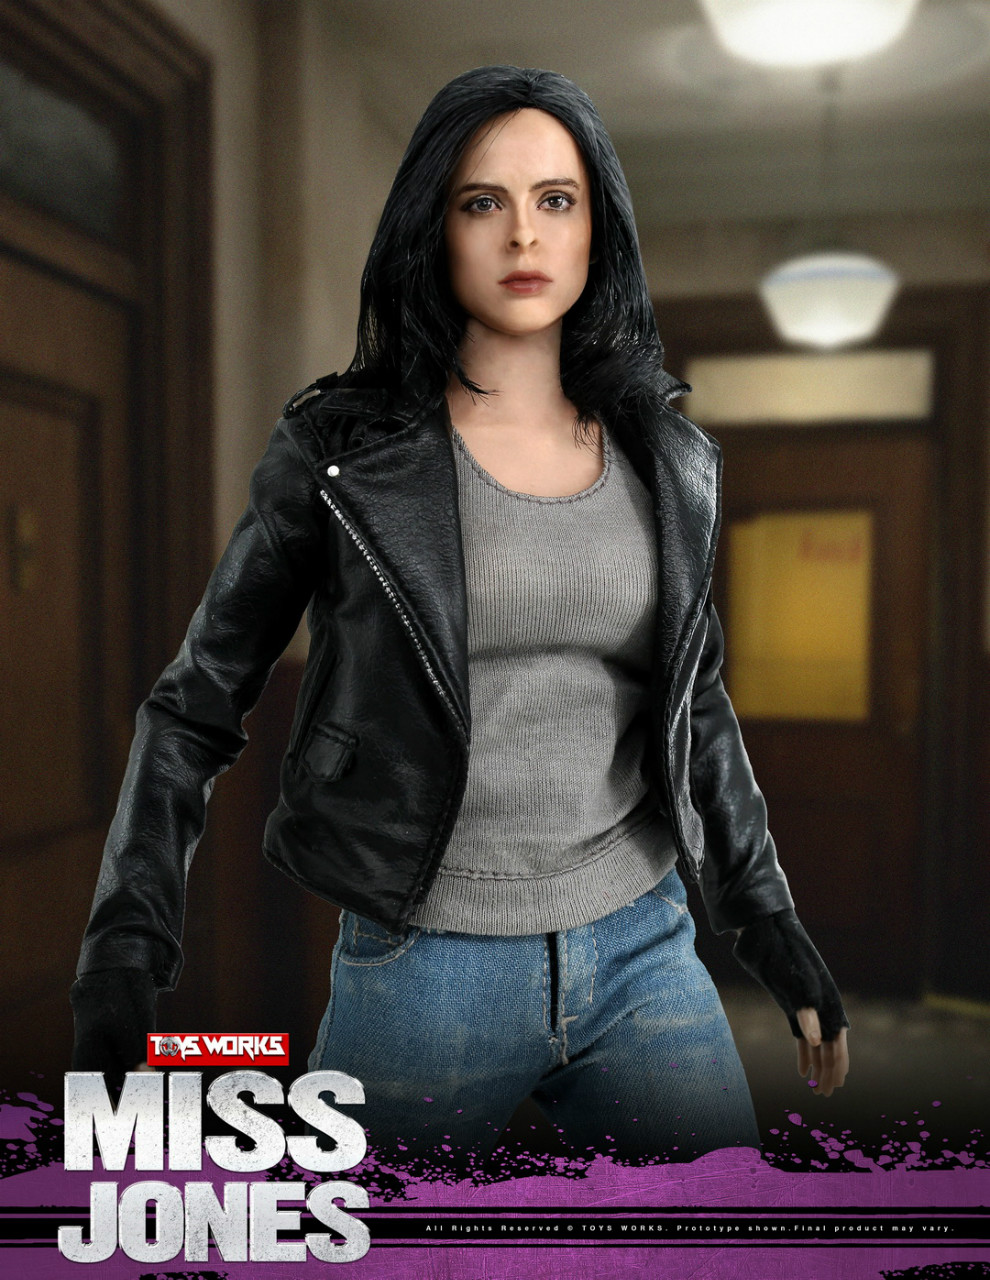 tv - NEW PRODUCT: TOYS WORKS New: 1/6 Miss Jones Miss Jones can move TW007 19163615